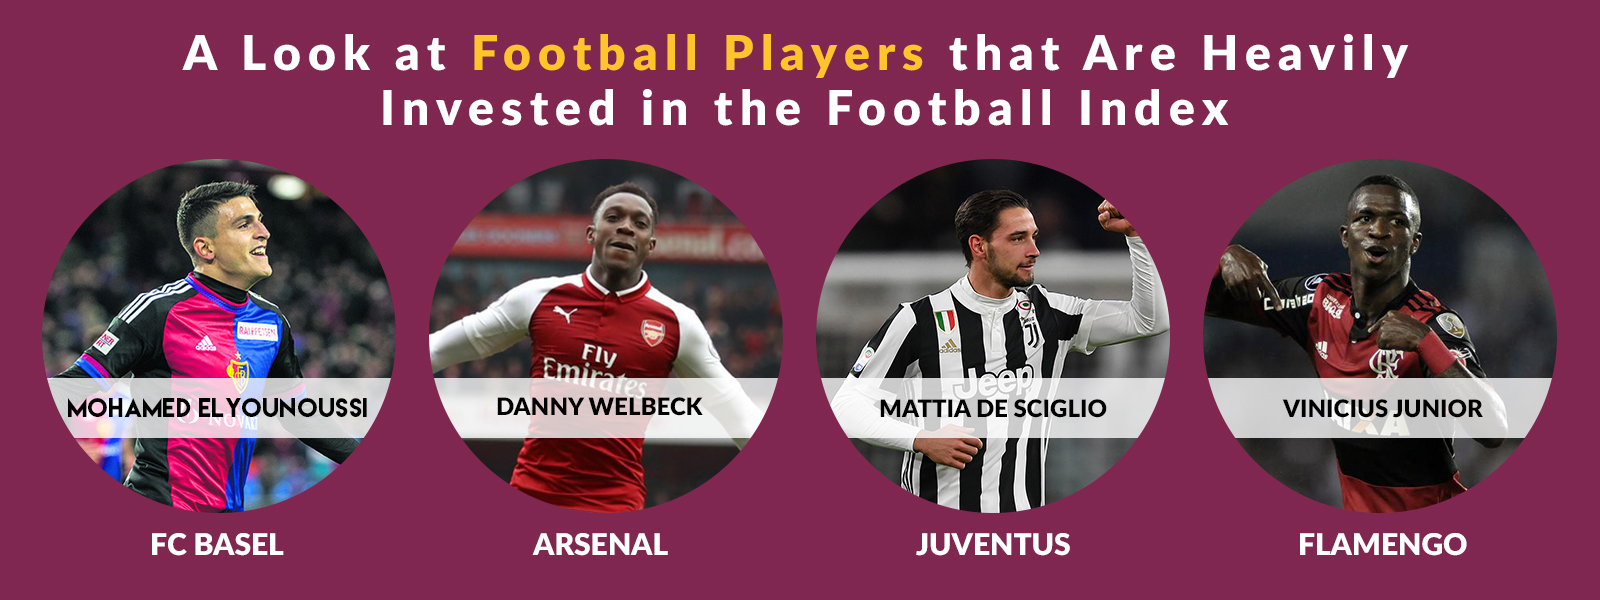 5 Footballers That Are Heavily Invested in the Football Index